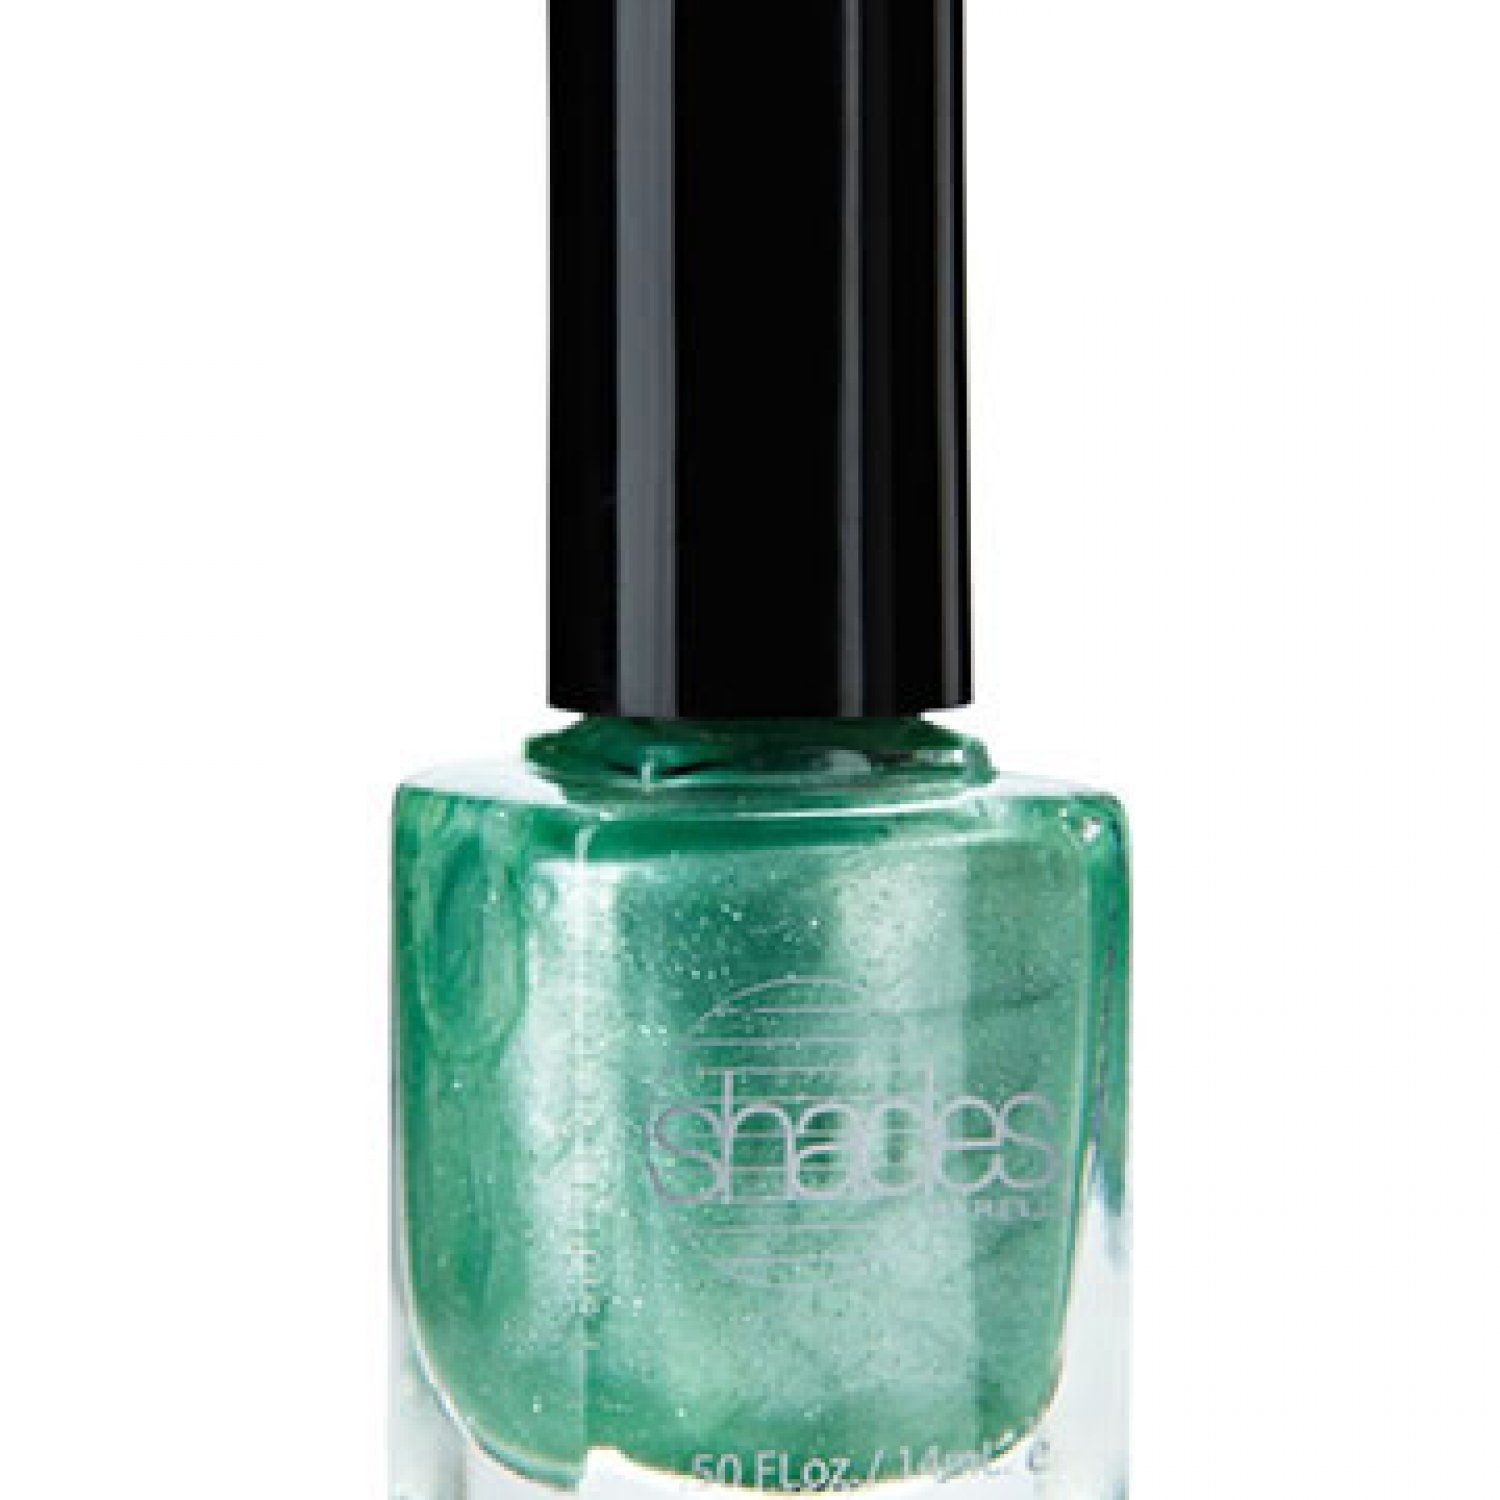 New favorite summer nail hue: a fresh, minty green with barely-there glitter. - FamilyCircle.com